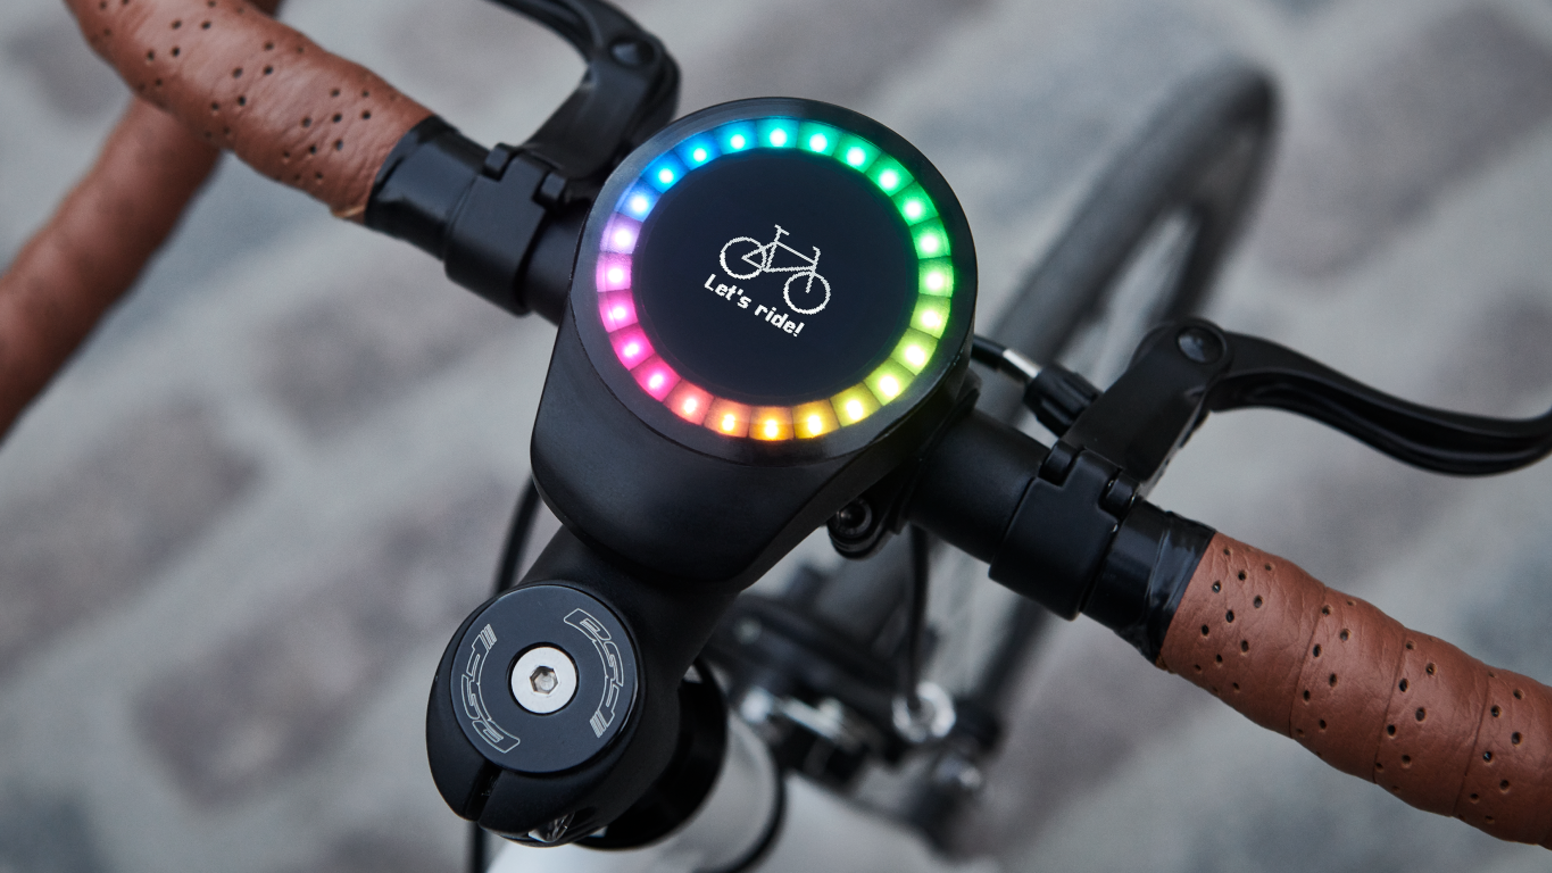 The next generation of the award-winning, minimalist smart biking device you love.